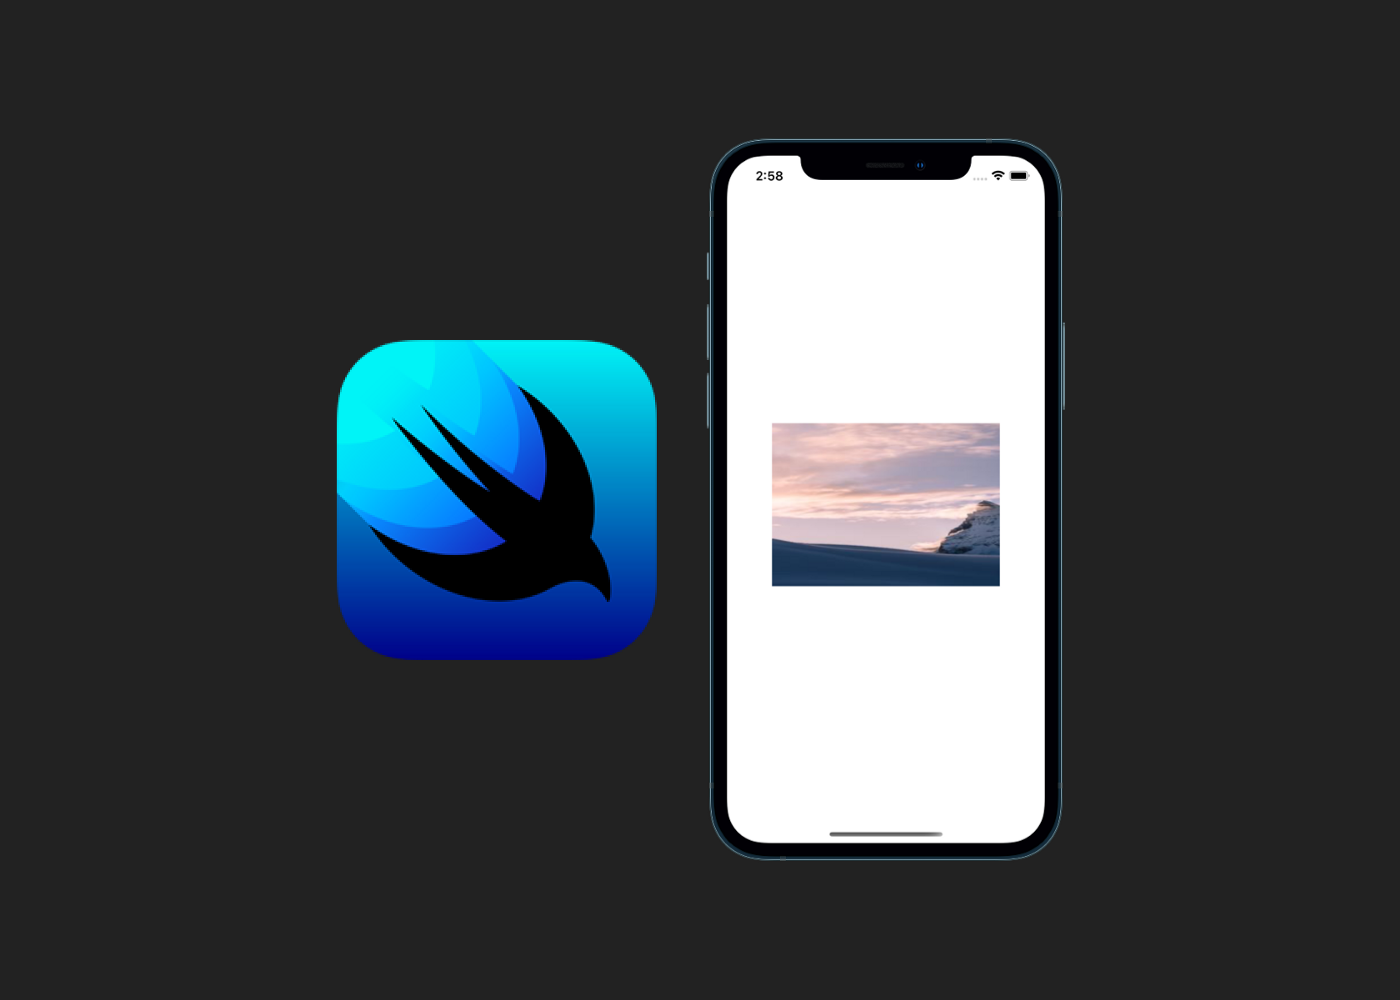 SwiftUI logo and iPhone displaying an image